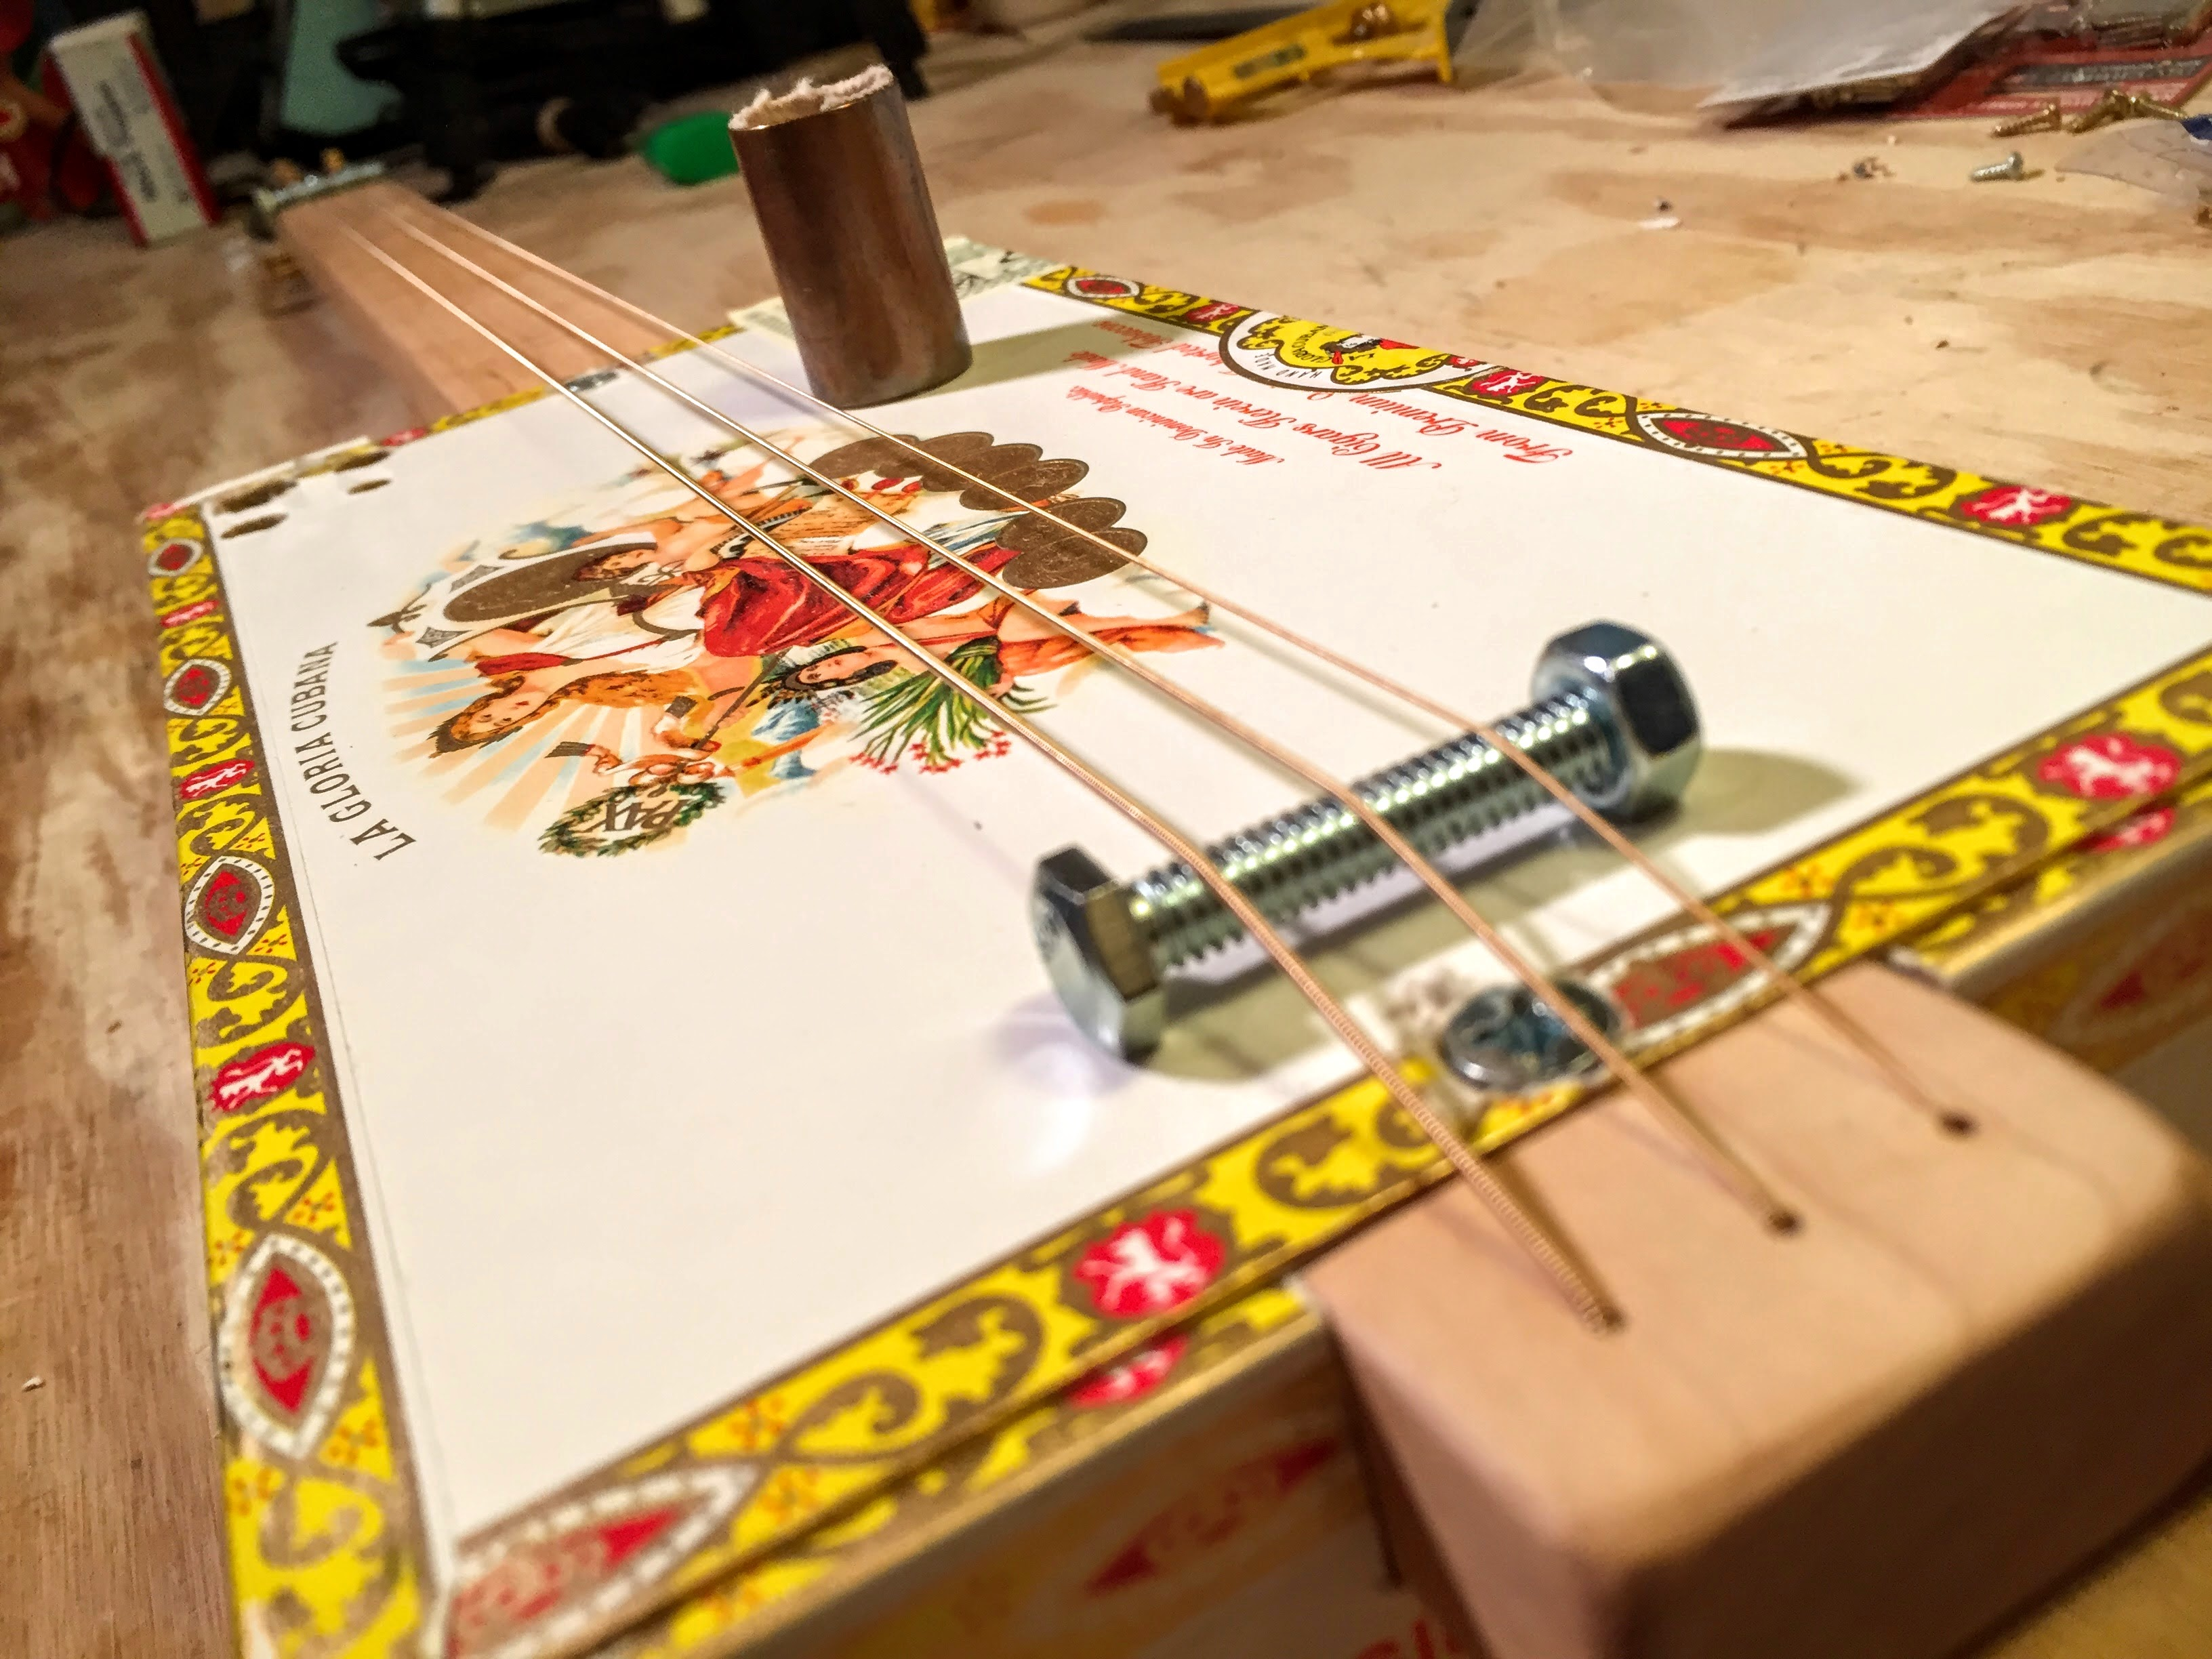 How To Make A Simple Cigar Box Guitar (Metric Included)